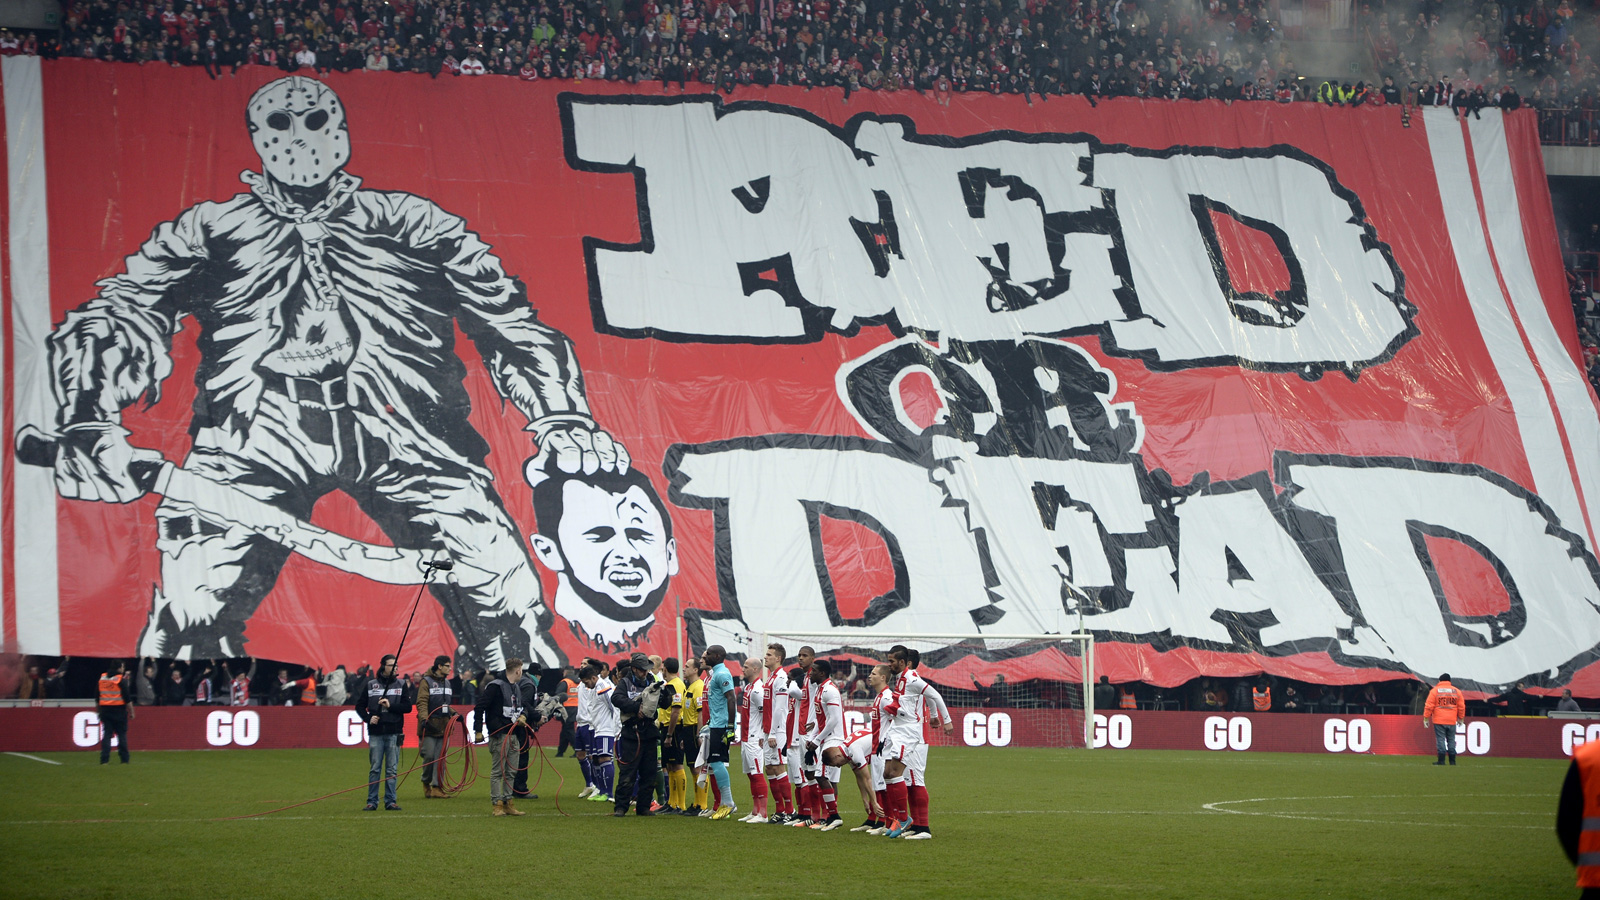 Standard Liege fans have a pointed message for Steven Defour, who departed the club for Belgian rival Anderlecht.